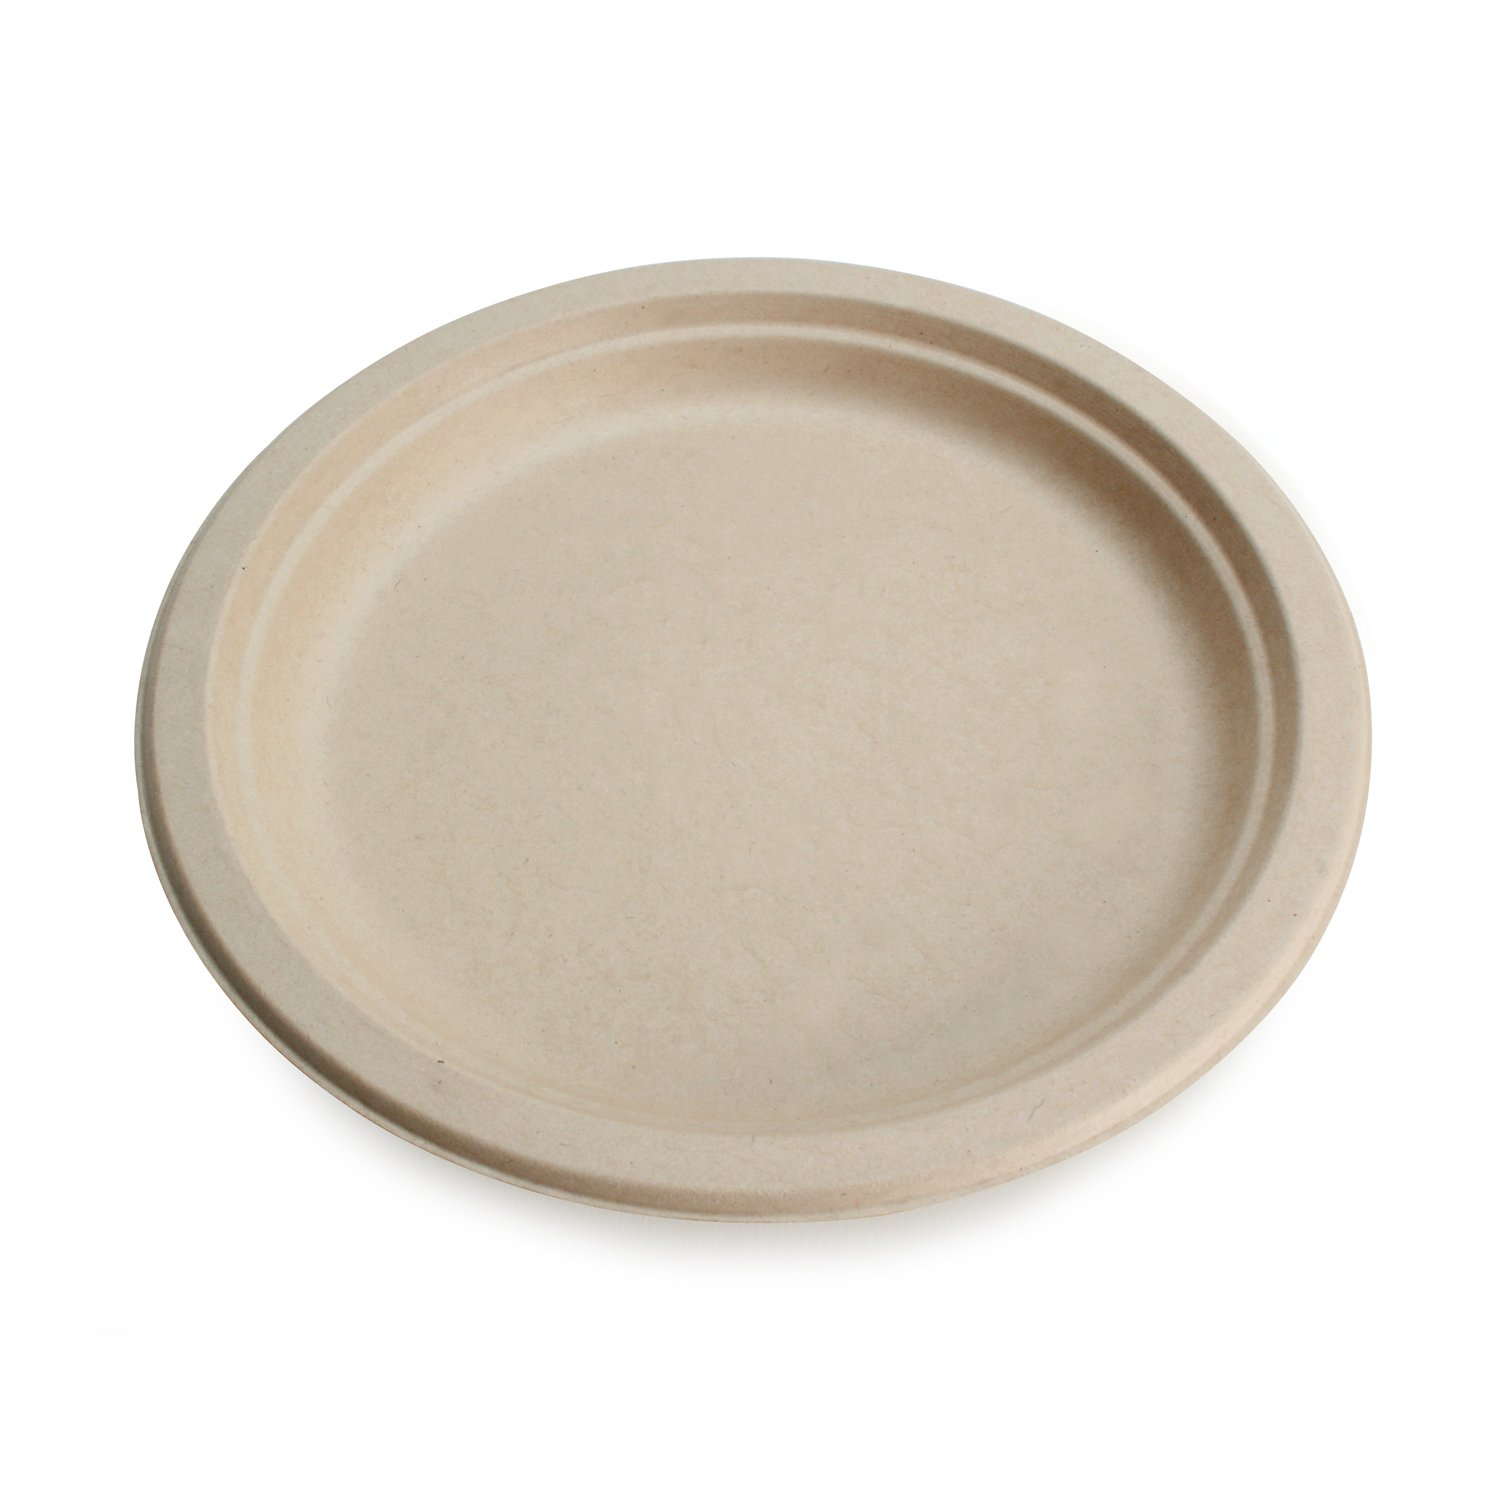 Earth's Natural Alternative Eco-Friendly, Natural Compostable Plant Fiber 9'' Plate, Natural, 500 Count by Earth's Natural Alternative